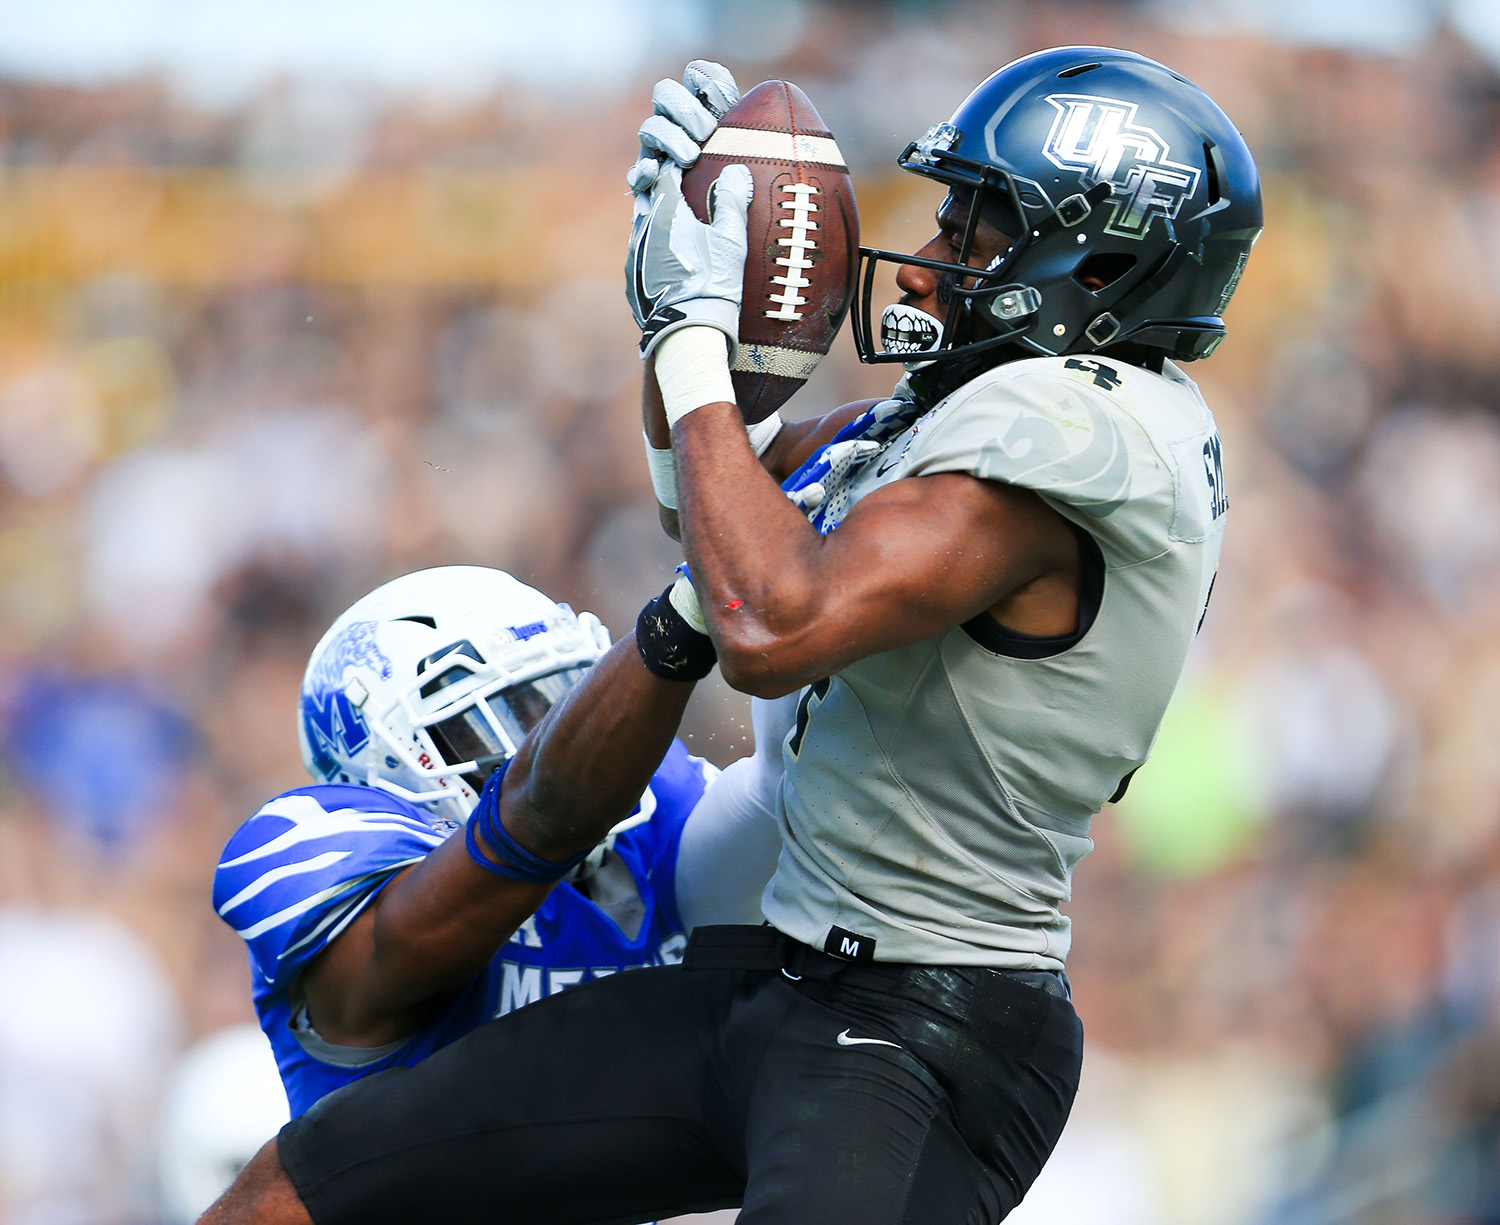 Dec 2, 2017; Orlando, FL, USA; UCF Knights wide receiver Tre'Quan Smith (4) catches a touchdown pass in front of Memphis Tigers linebacker Darian Porter (29) during the second half at Spectrum Stadium. Mandatory Credit: Matt Stamey-USA TODAY Sports